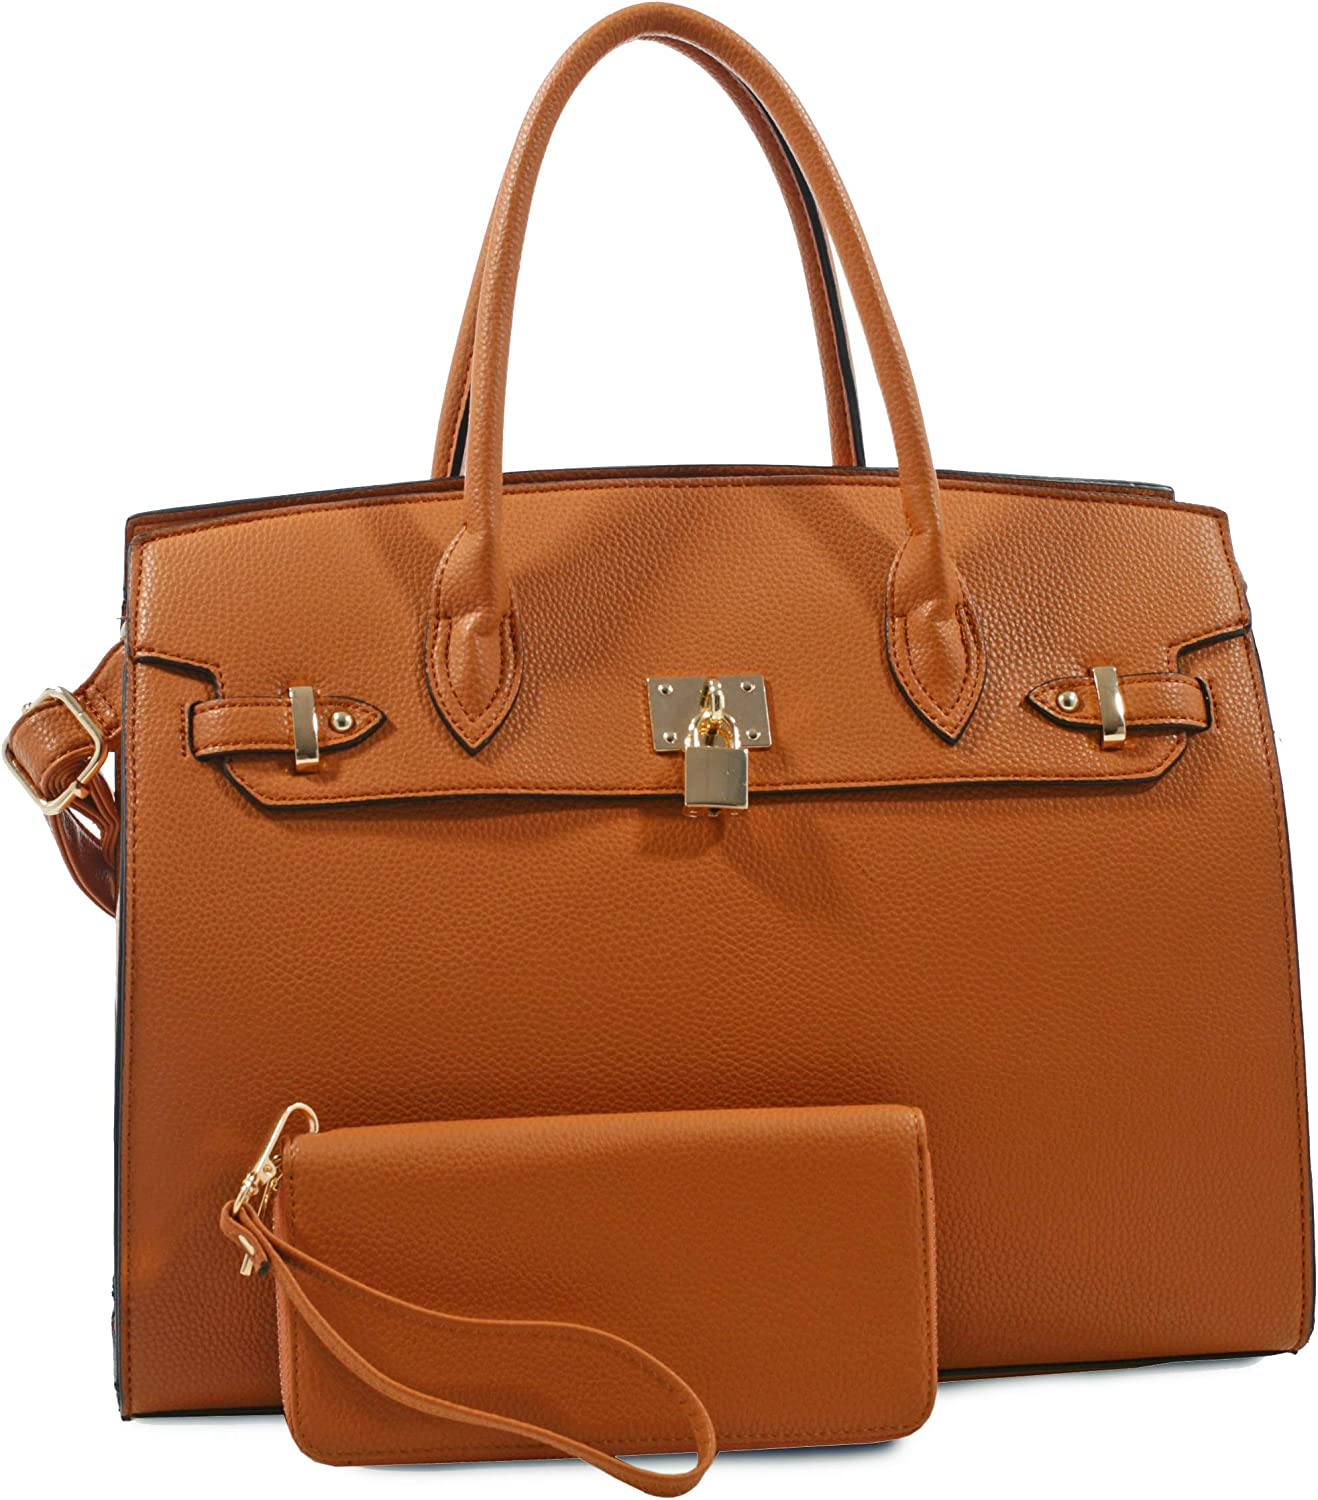 Deluxity Structured Large Satchel w Padlock Accent + Strap Tan